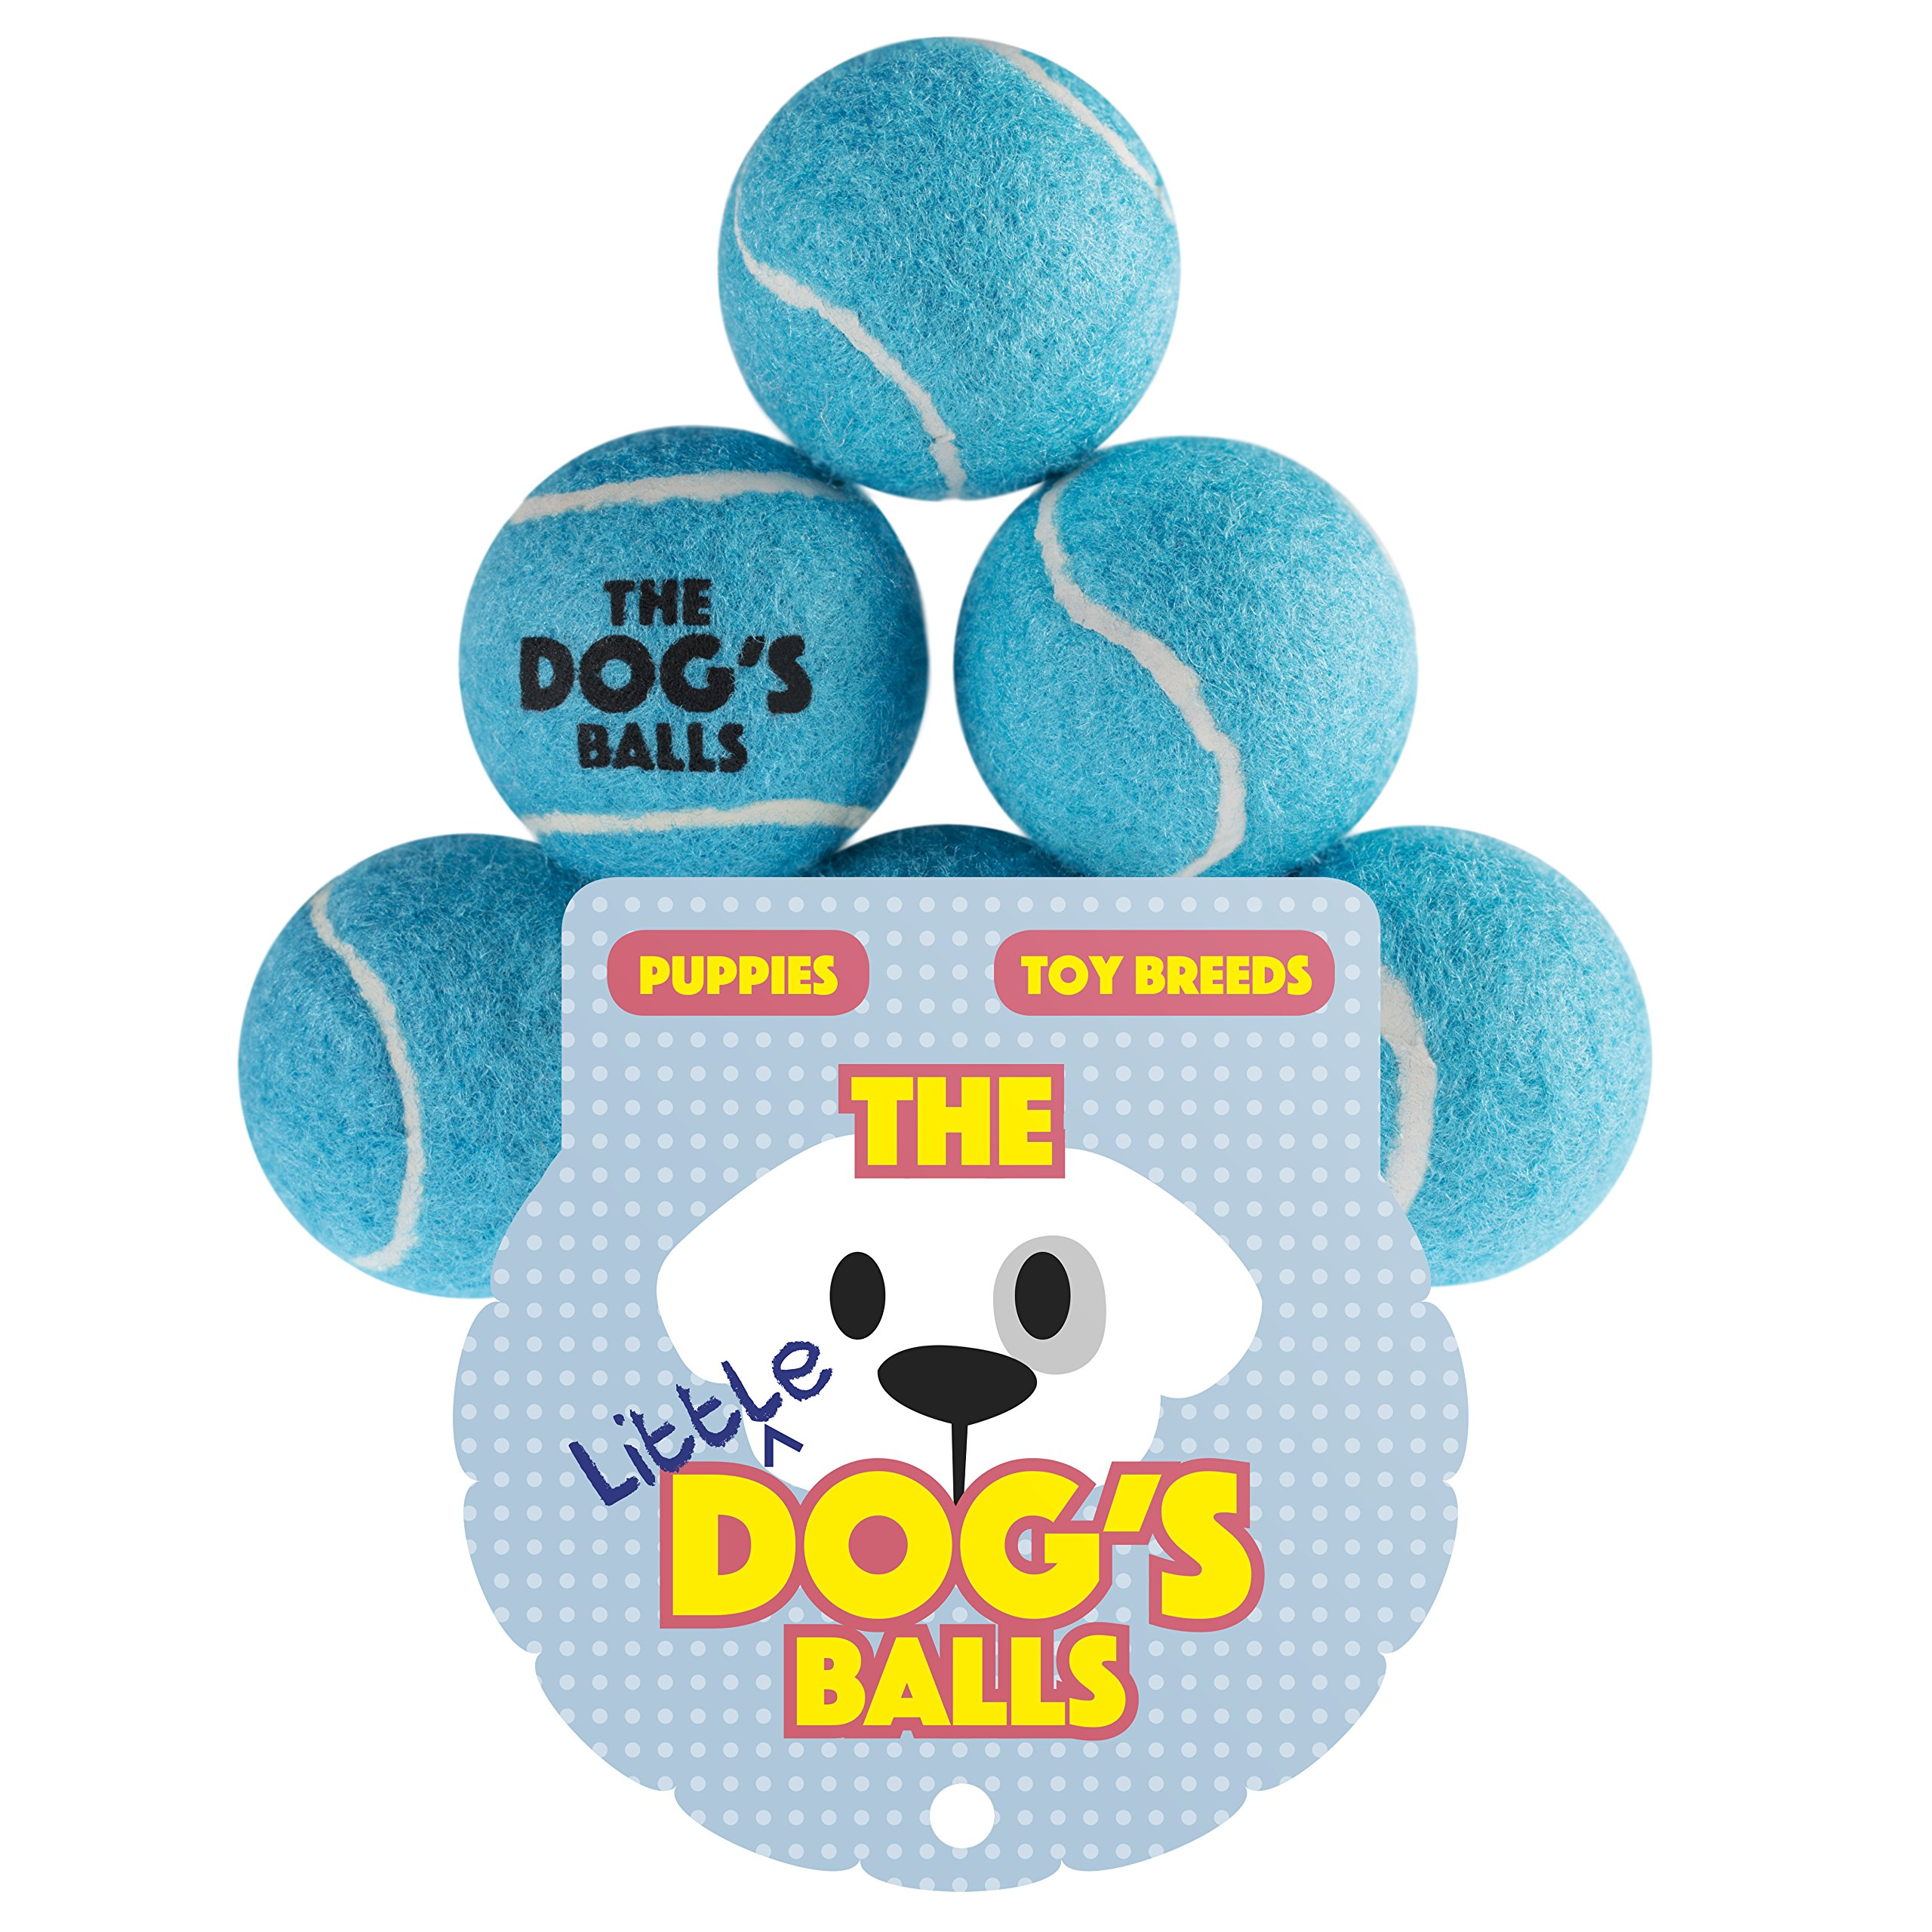 The Dog's Balls Tennis Balls for Dogs, Premium Mini Dog Toy for Puppies and Small Dogs, Puppy Exercise, Play, Training and Fetch, No Squeaker, The King Kong of Little Dog Balls, Blue